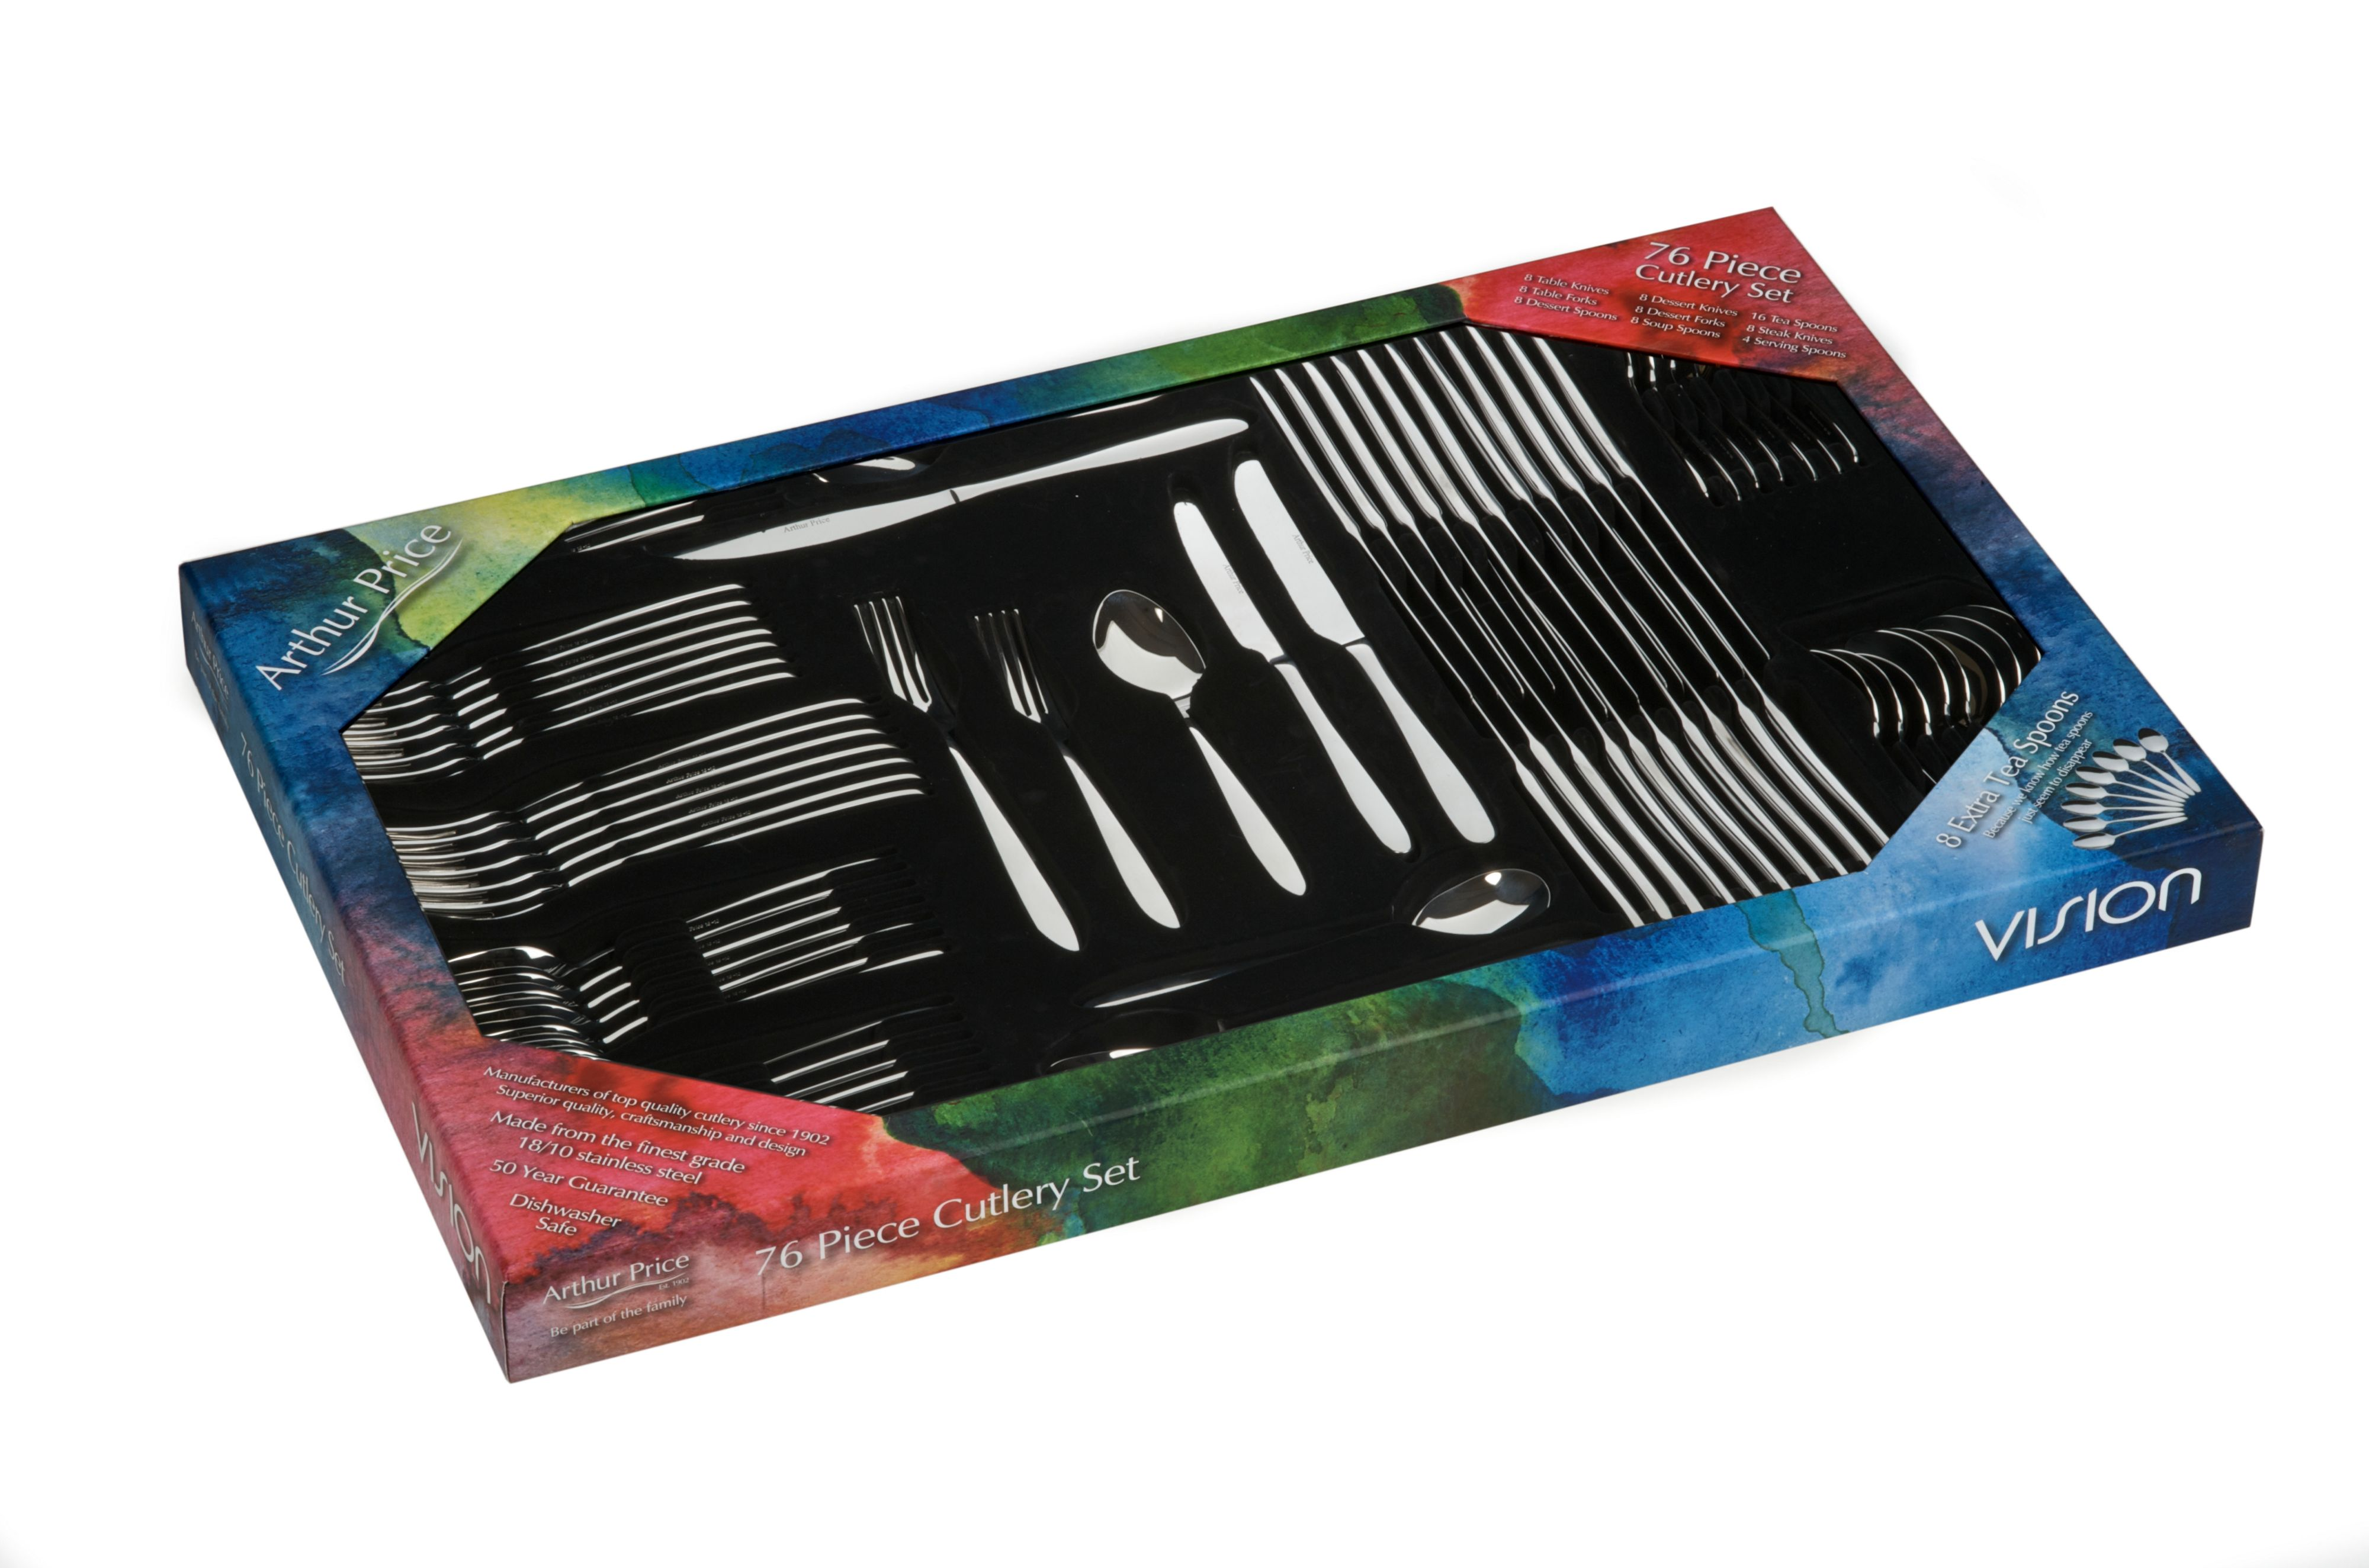 Vision 76 pce 8 person stainless steel box set